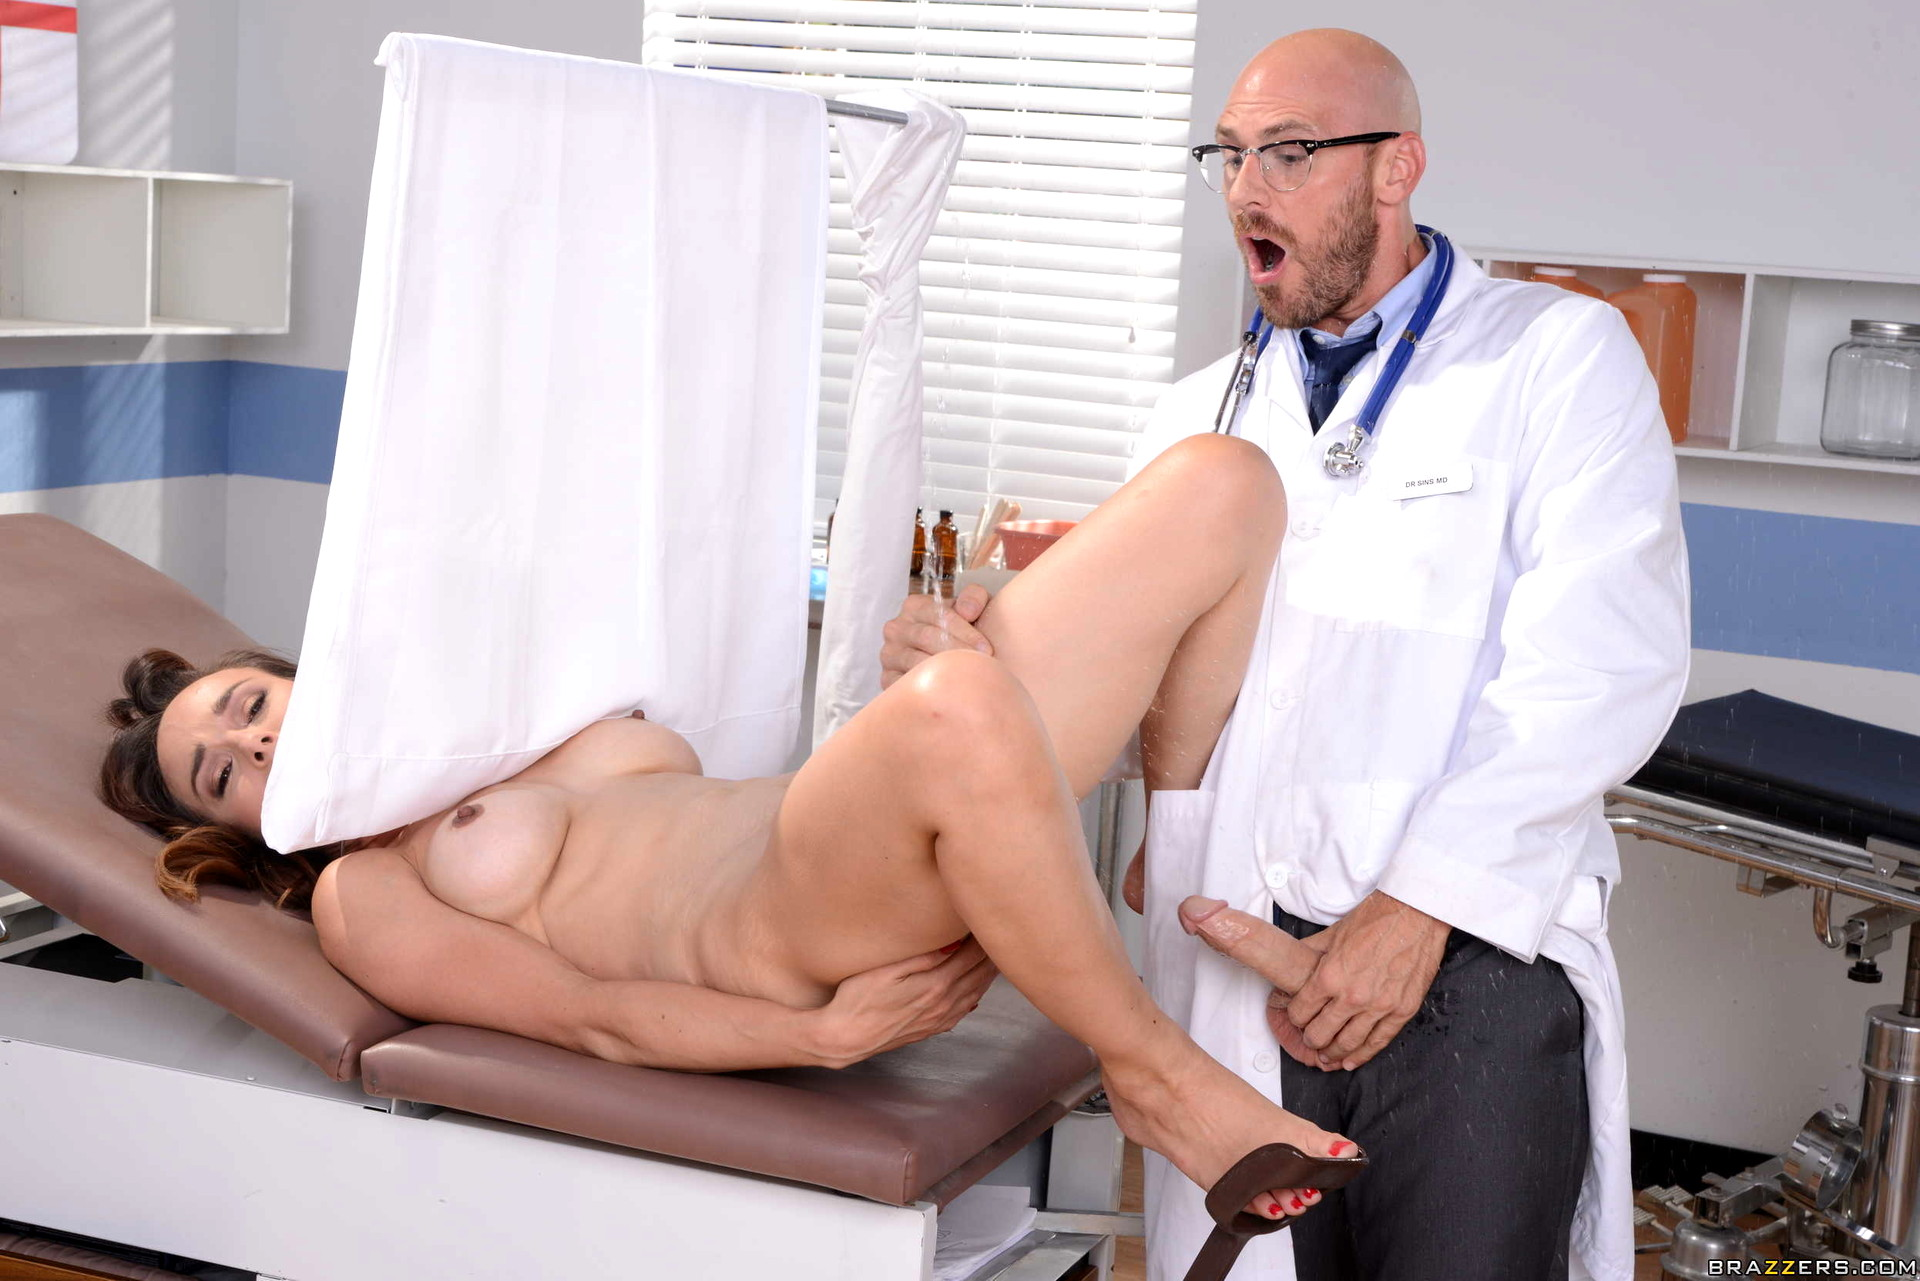 Naughty busty doctor fucked her patient